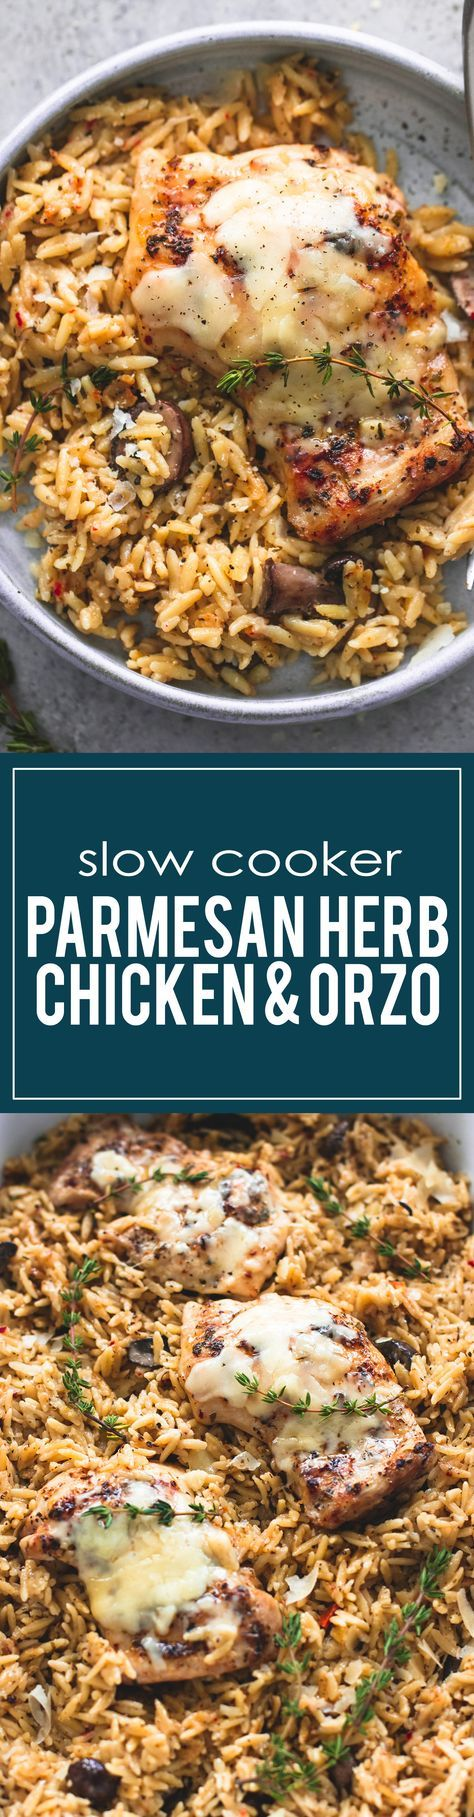 Slow Cooker Parmesan Herb Chicken & Orzo | http://lecremedelacrumb.com